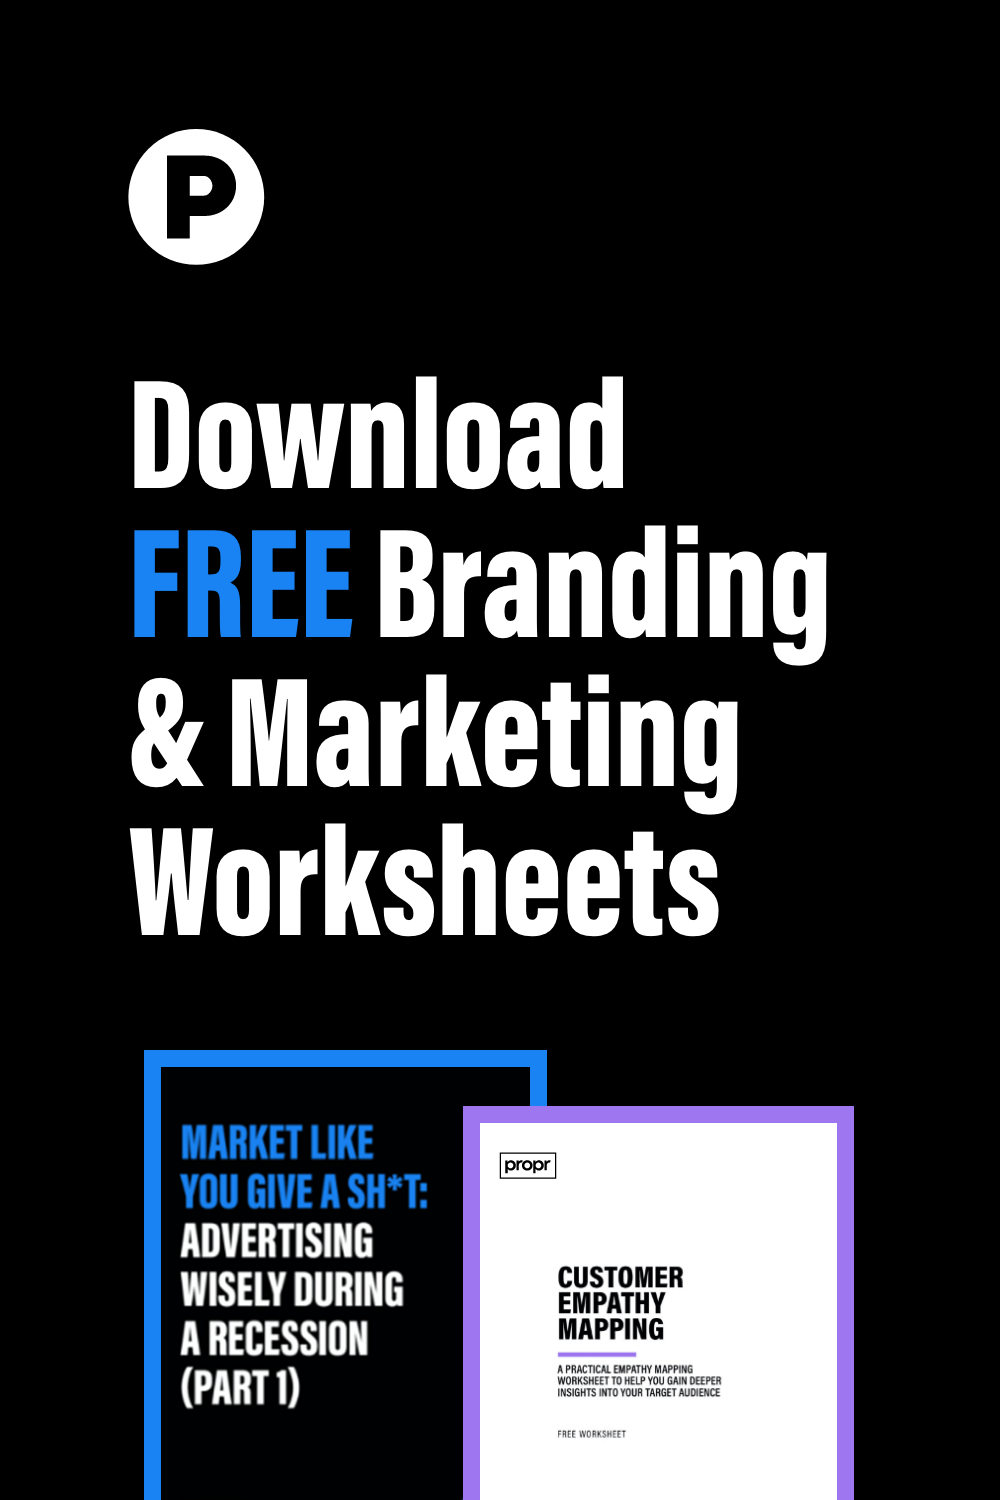 Download Free Branding & Marketing Resources and Case Studies